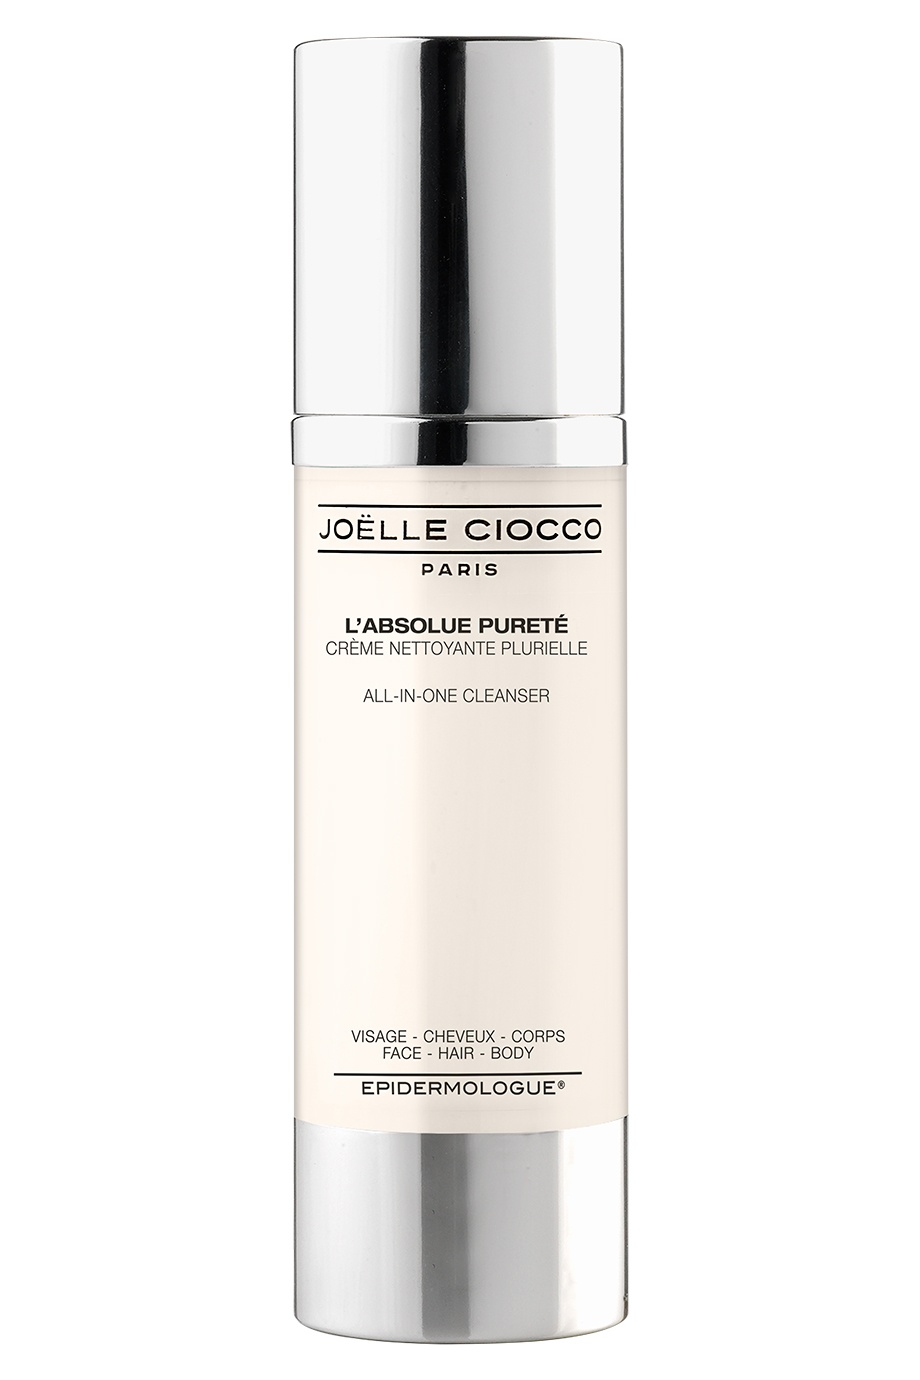 Очищающий крем L'ABSOLUE PURETE, 80 ml Joëlle Ciocco (фото)